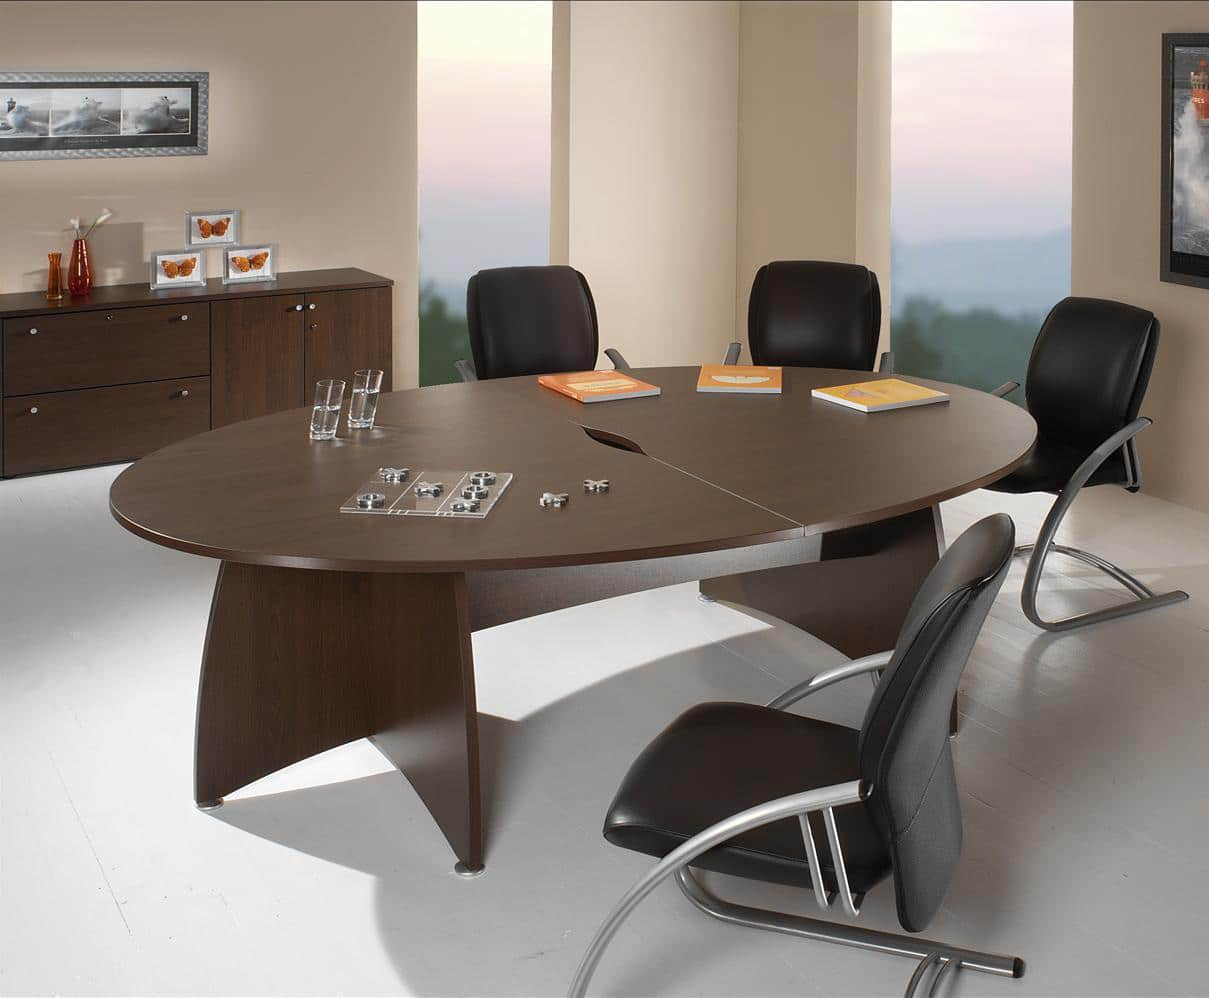 table de reunion ovale elancia 2m mobilier bureau. Black Bedroom Furniture Sets. Home Design Ideas